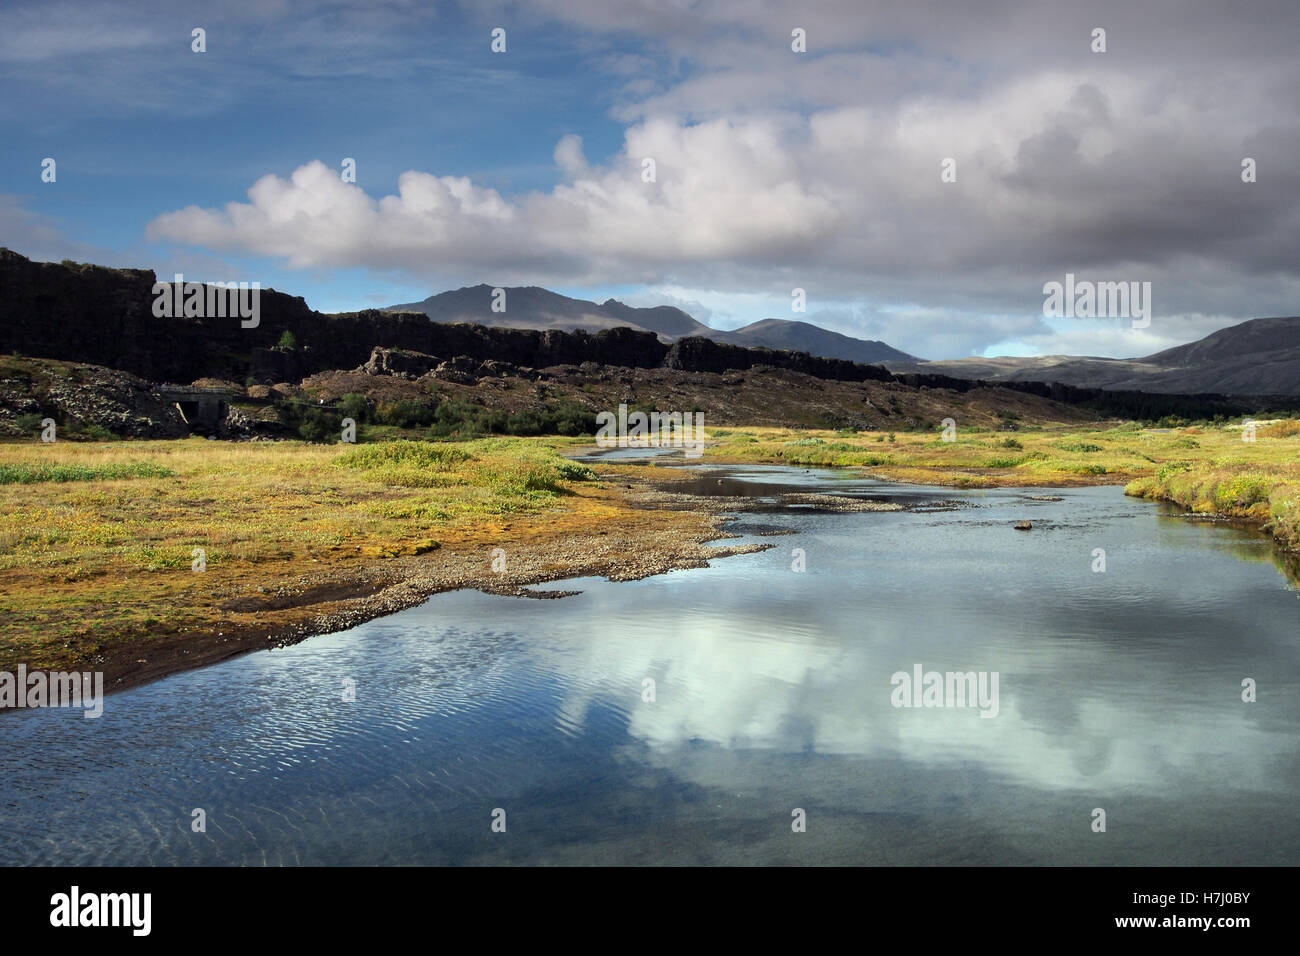 Thingvellir national park in Iceland - Stock Image